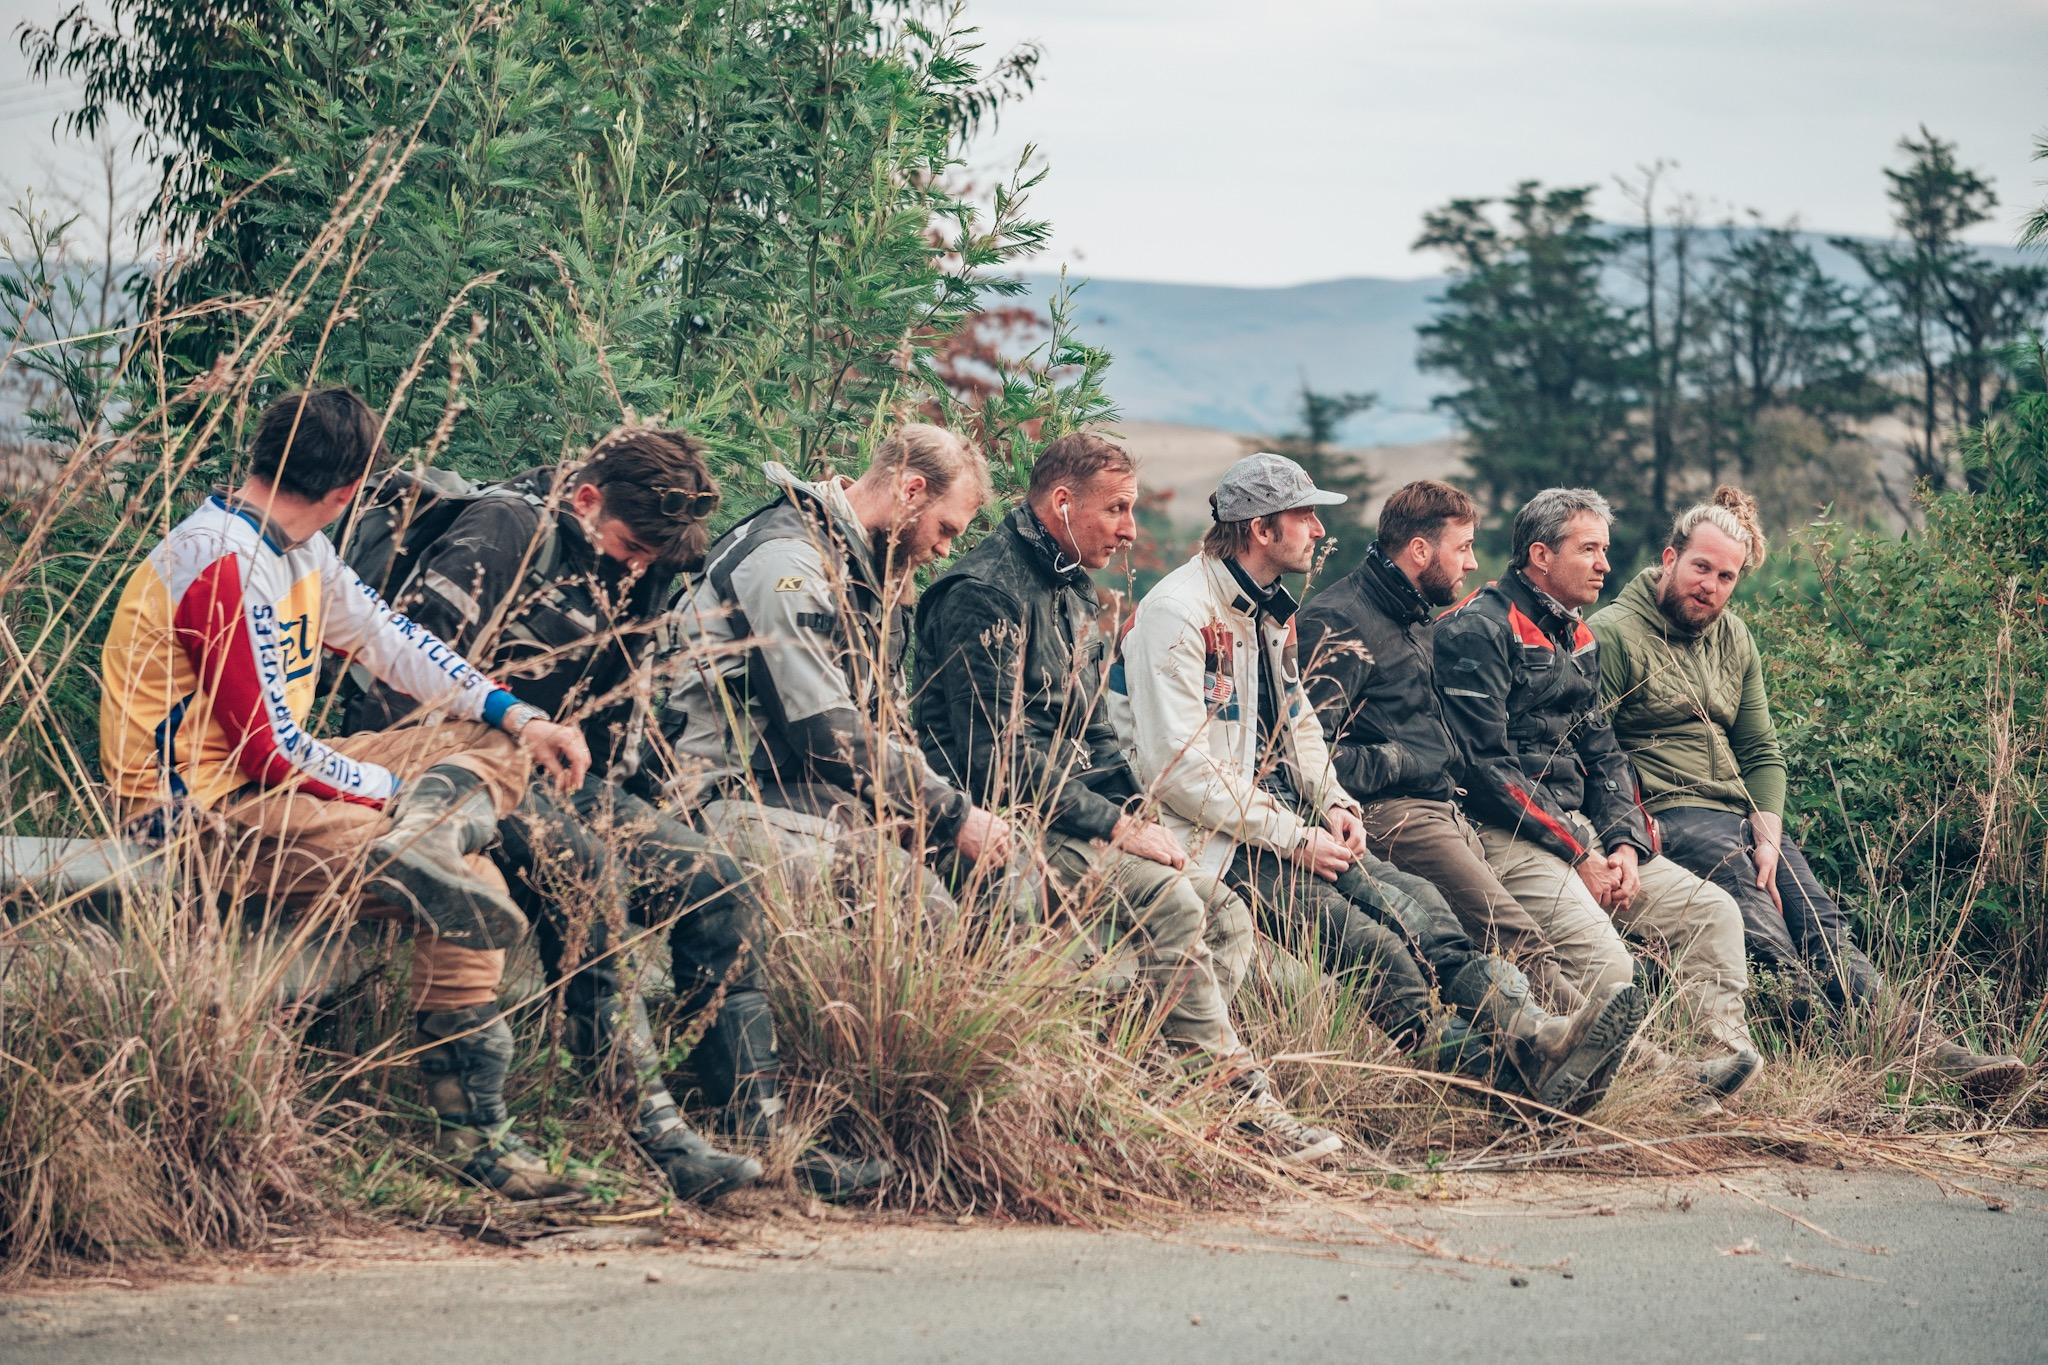 The group taking a break while we wait on a few more riders on the Bonafide Moto Adventure to Sani Pass.